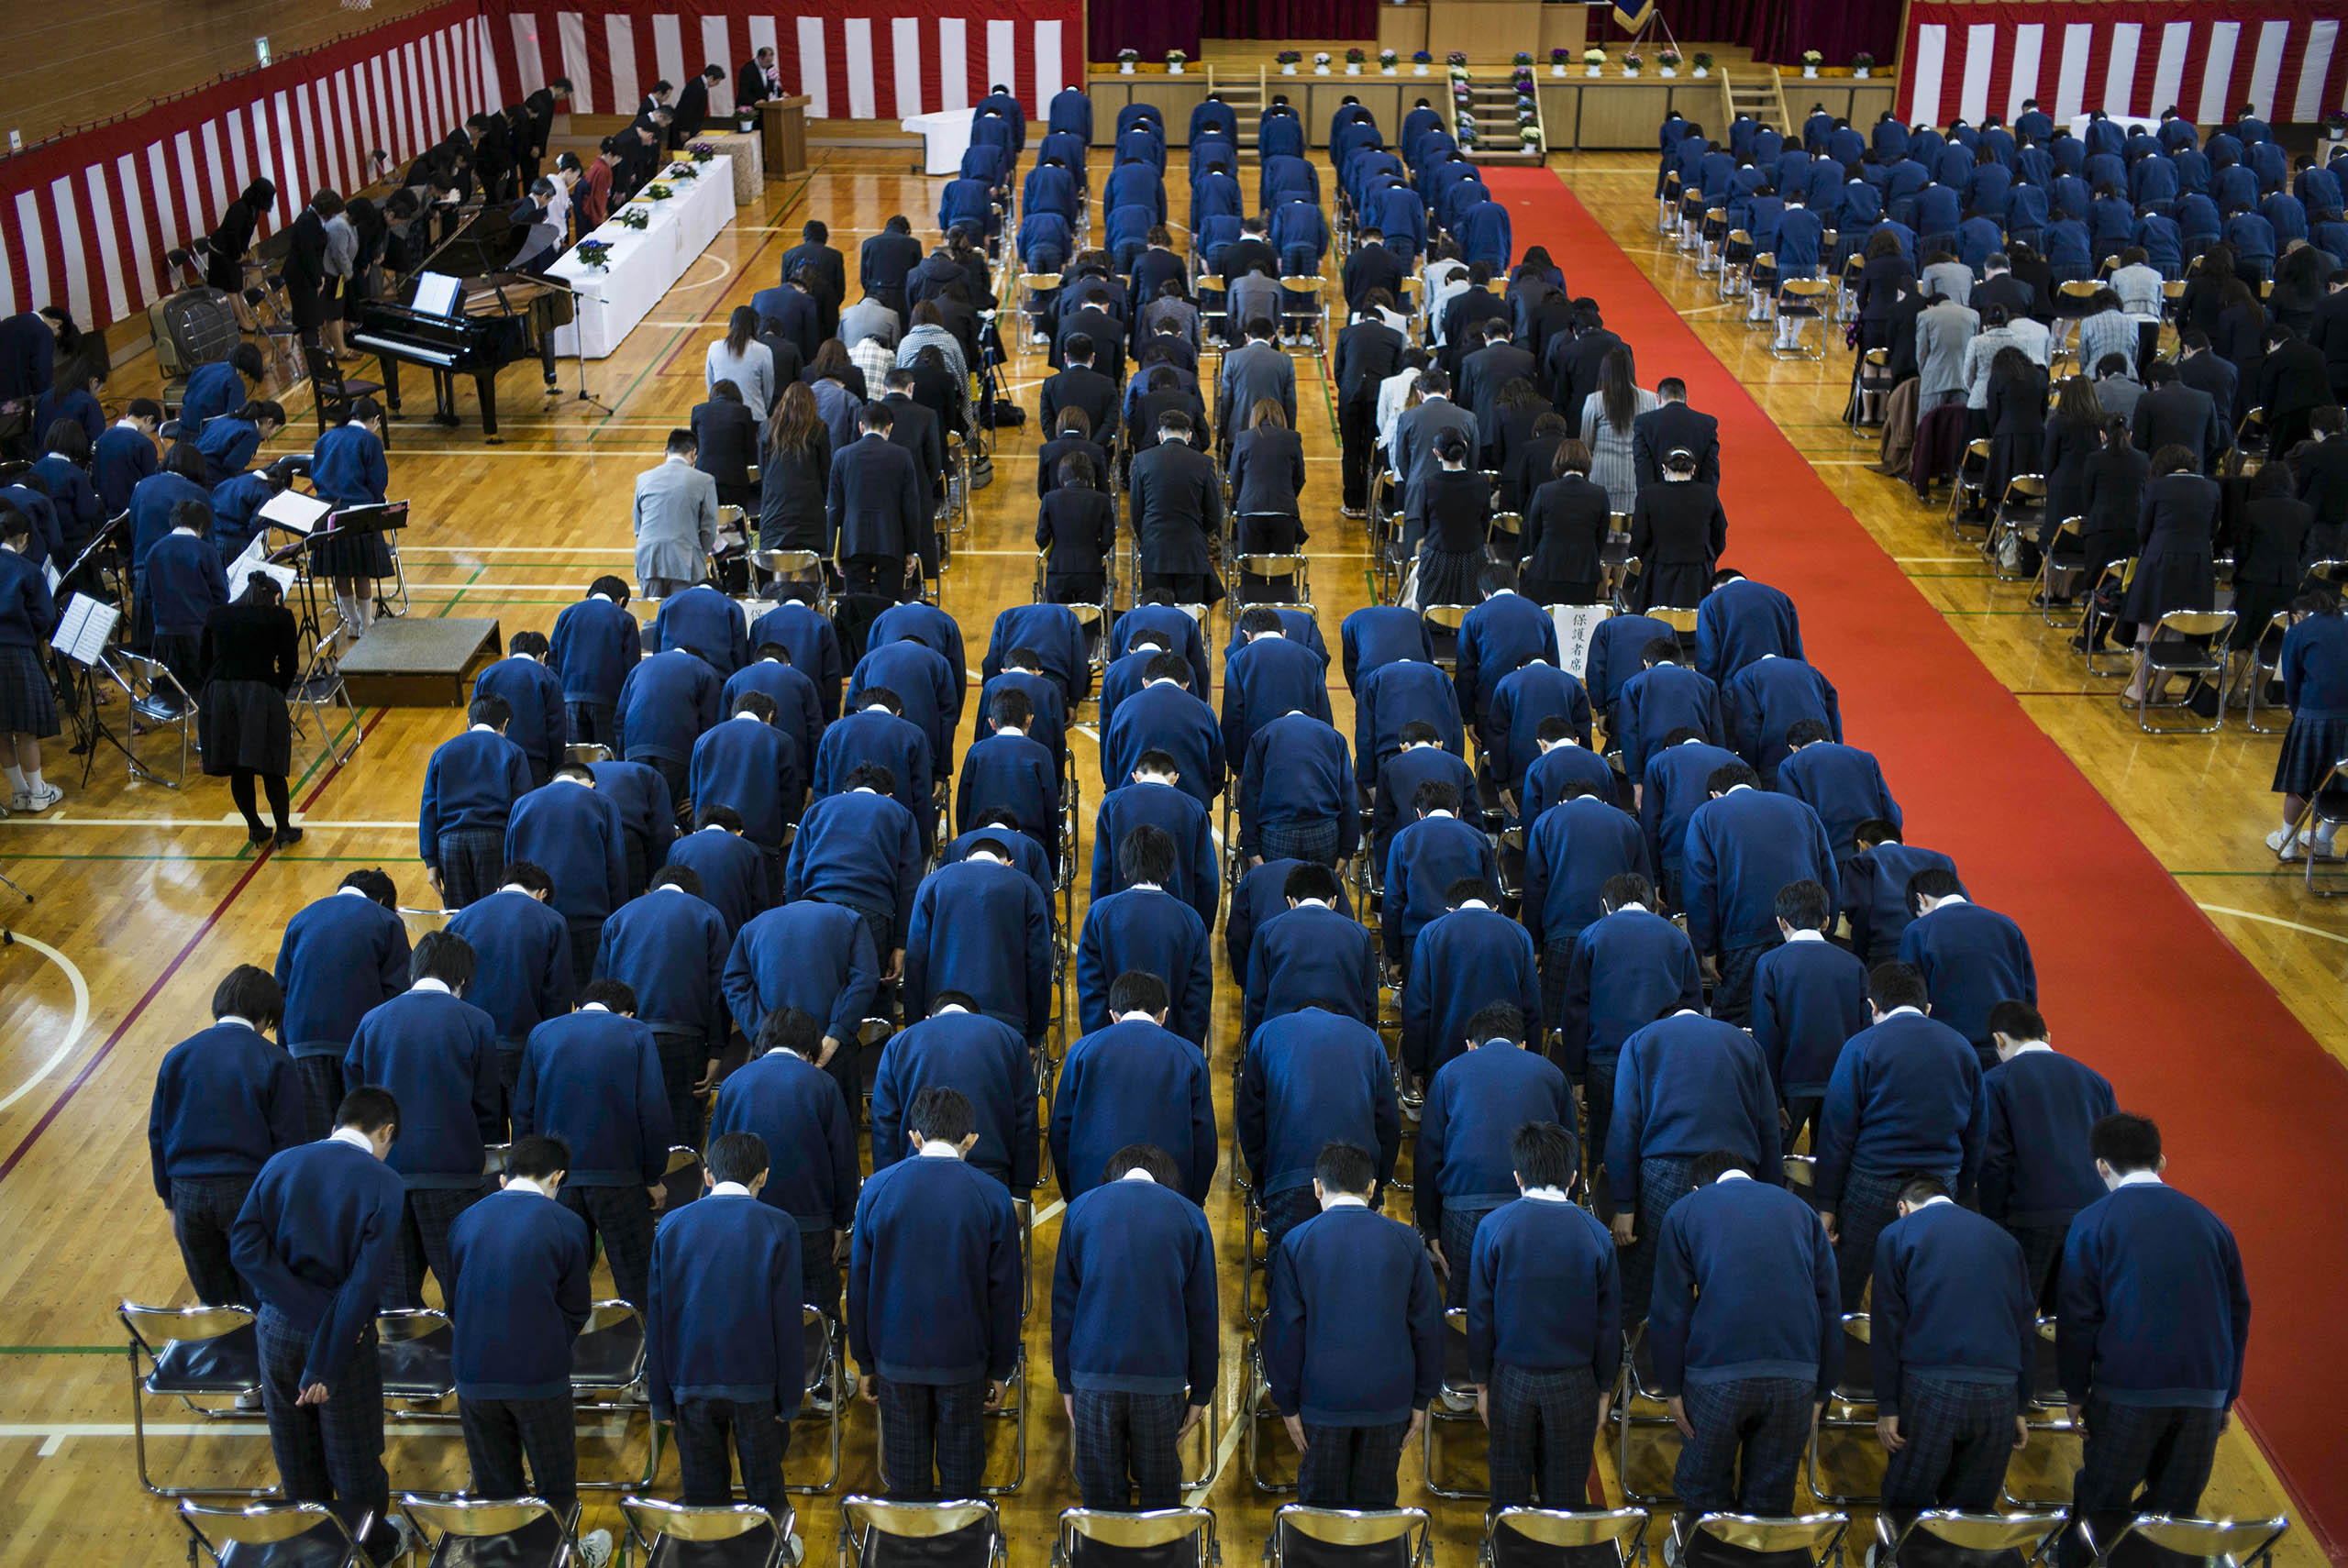 Students in the first rows prepare to graduate from Minamisoma's Ishigami Junior High School on the fifth anniversary of the massive earthquake and tsunami that struck the northeastern coast of Japan, damaging the Fukushima Daiichi nuclear power plant 25km away.